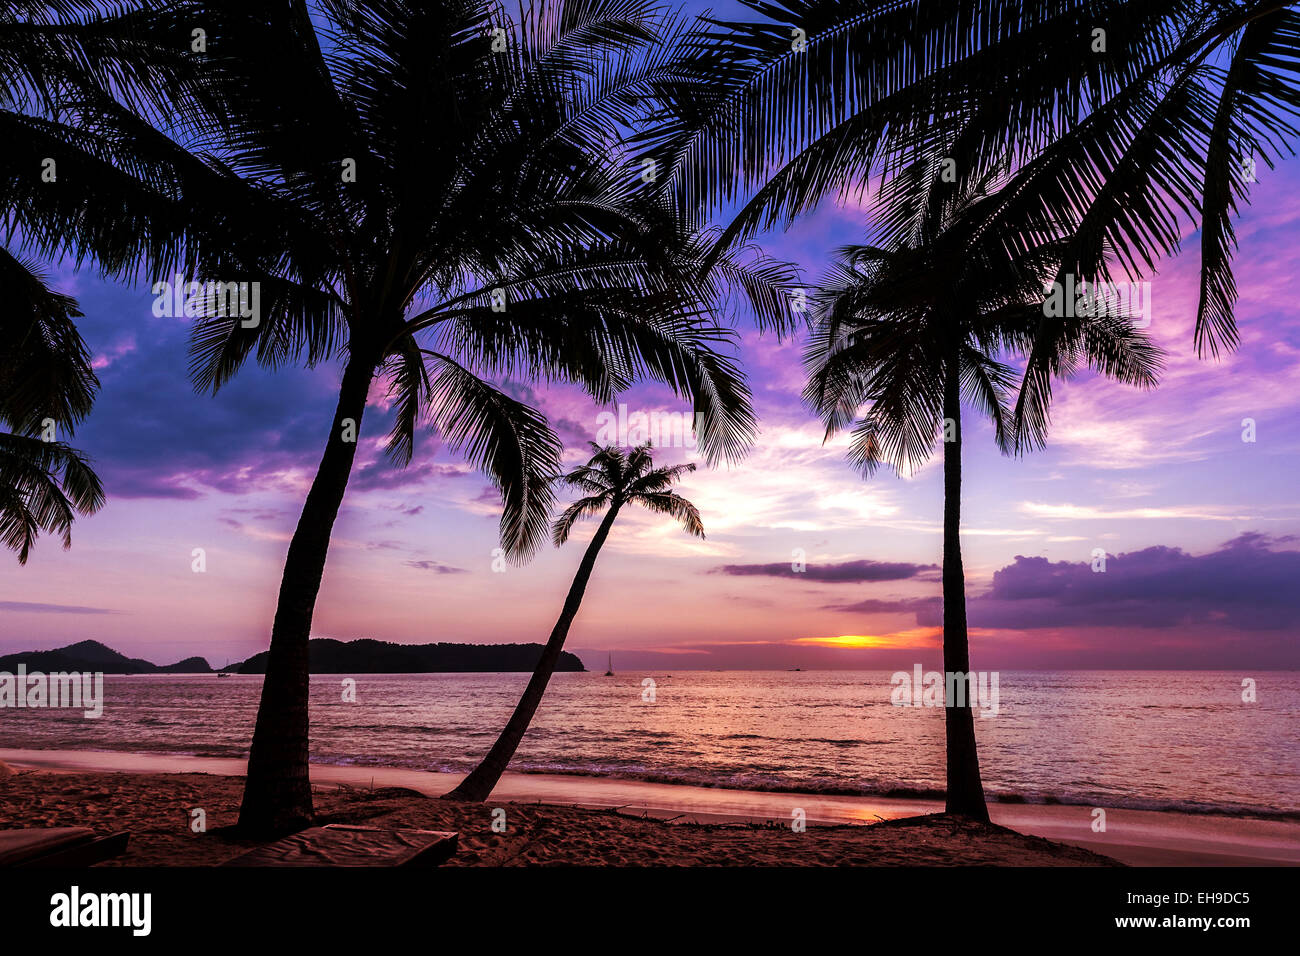 Holiday background made of palm trees silhouettes at sunset. Stock Photo